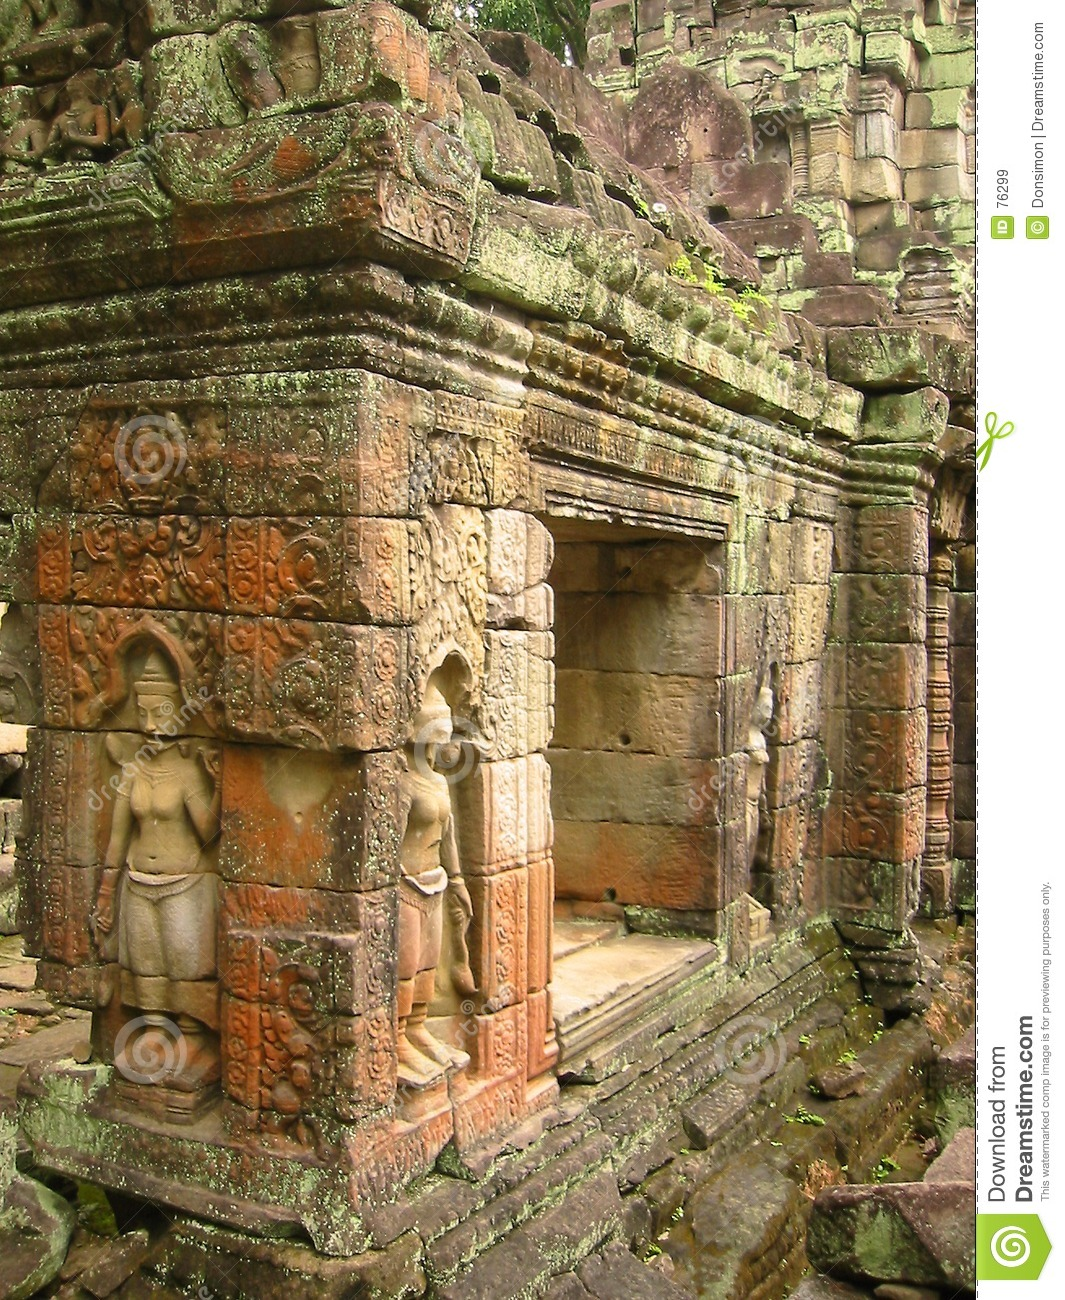 Angkor wat temple walls aspara carvings royalty free stock